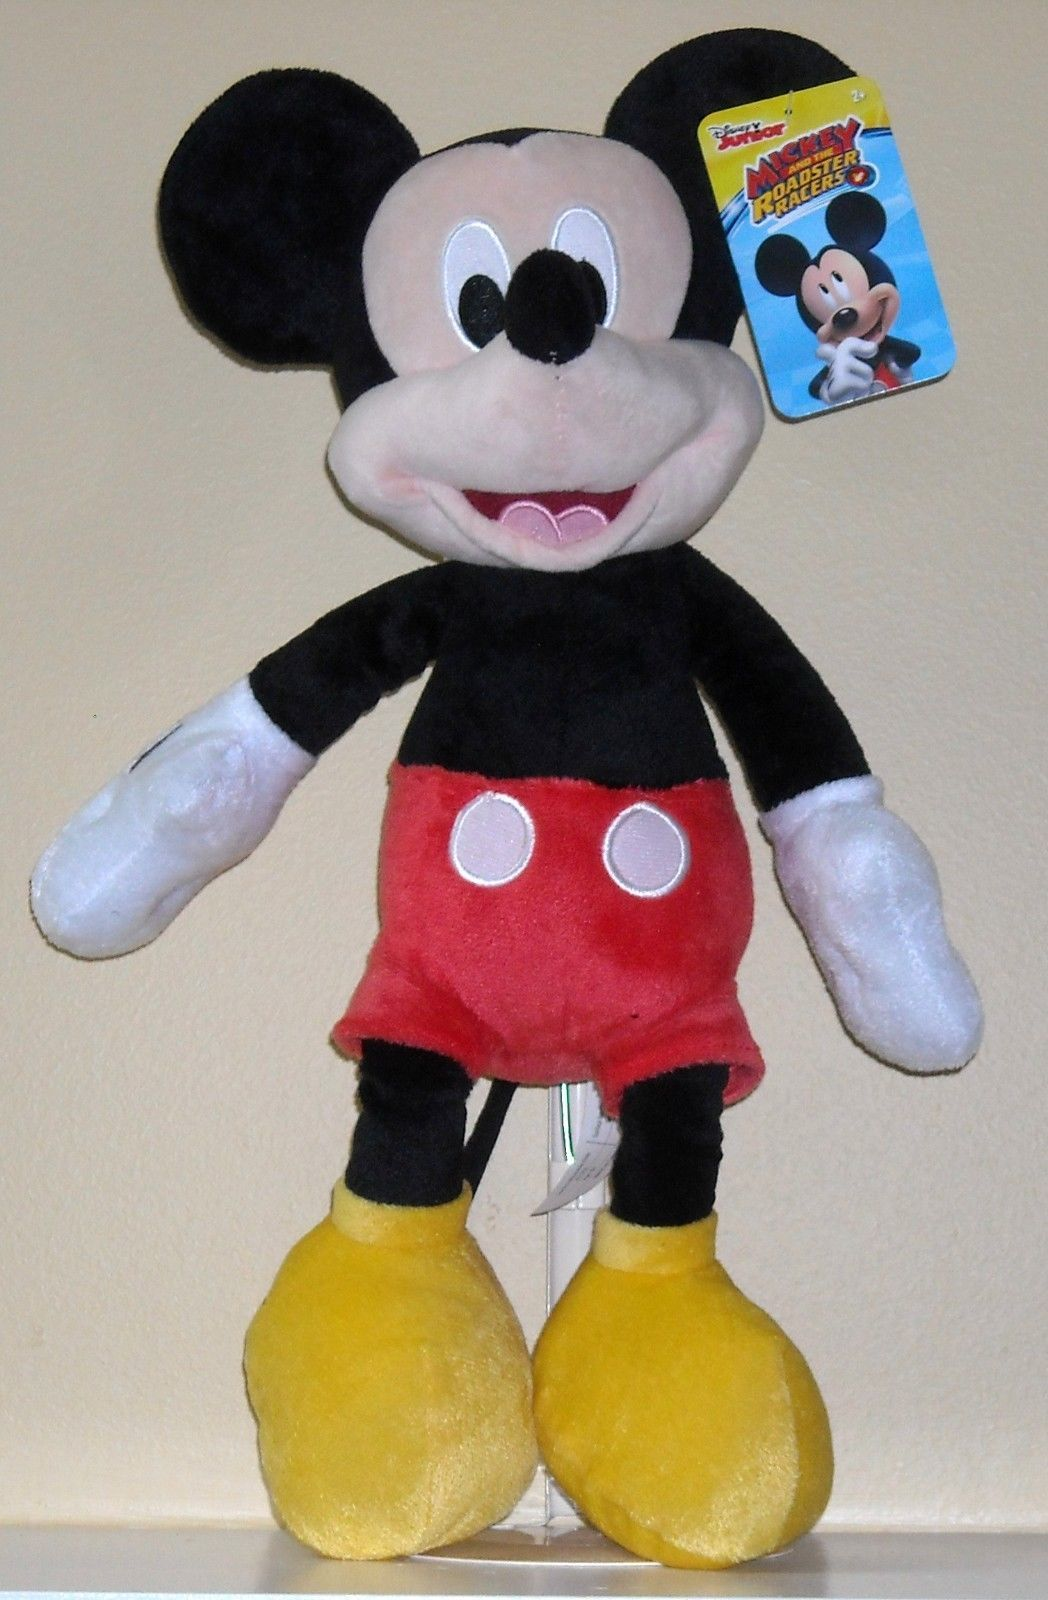 "Mickey Mouse Plush 15.5"" image"